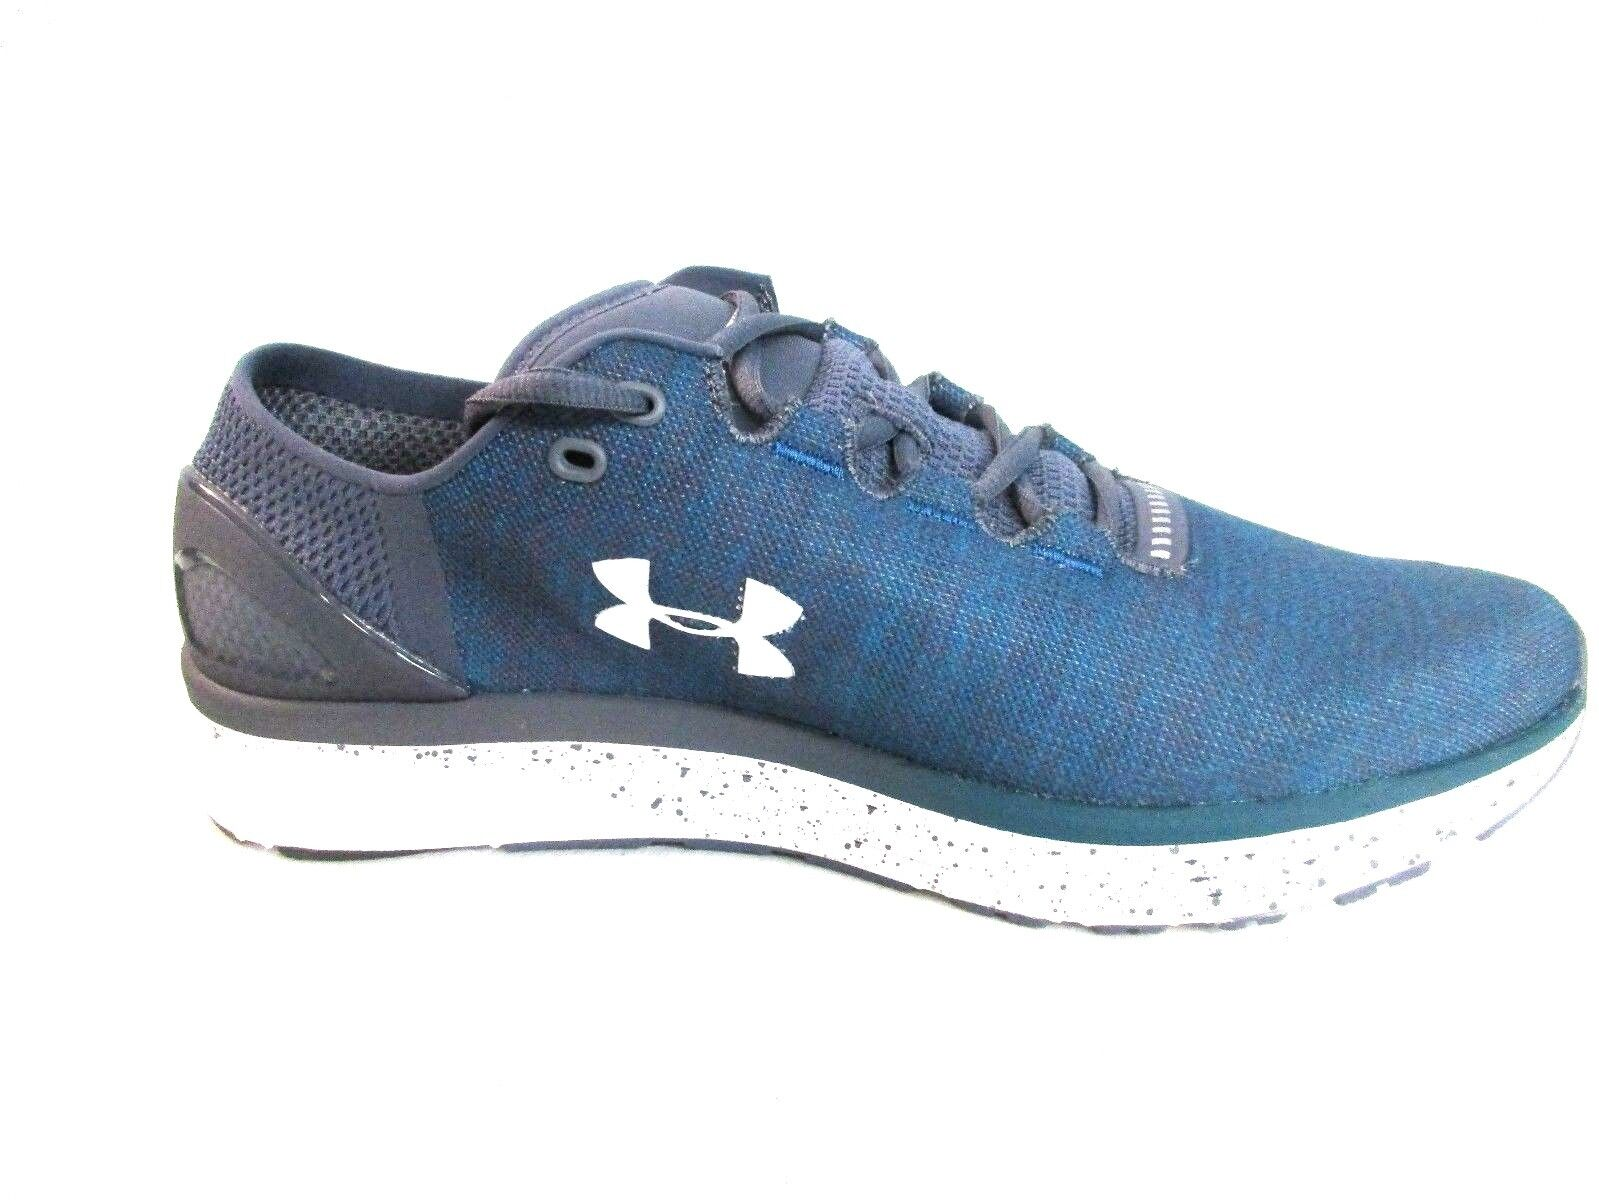 Under Armour Men's Charged Bandit 3 Bayou Blue/Apollo  size 10.5 -  0635 [